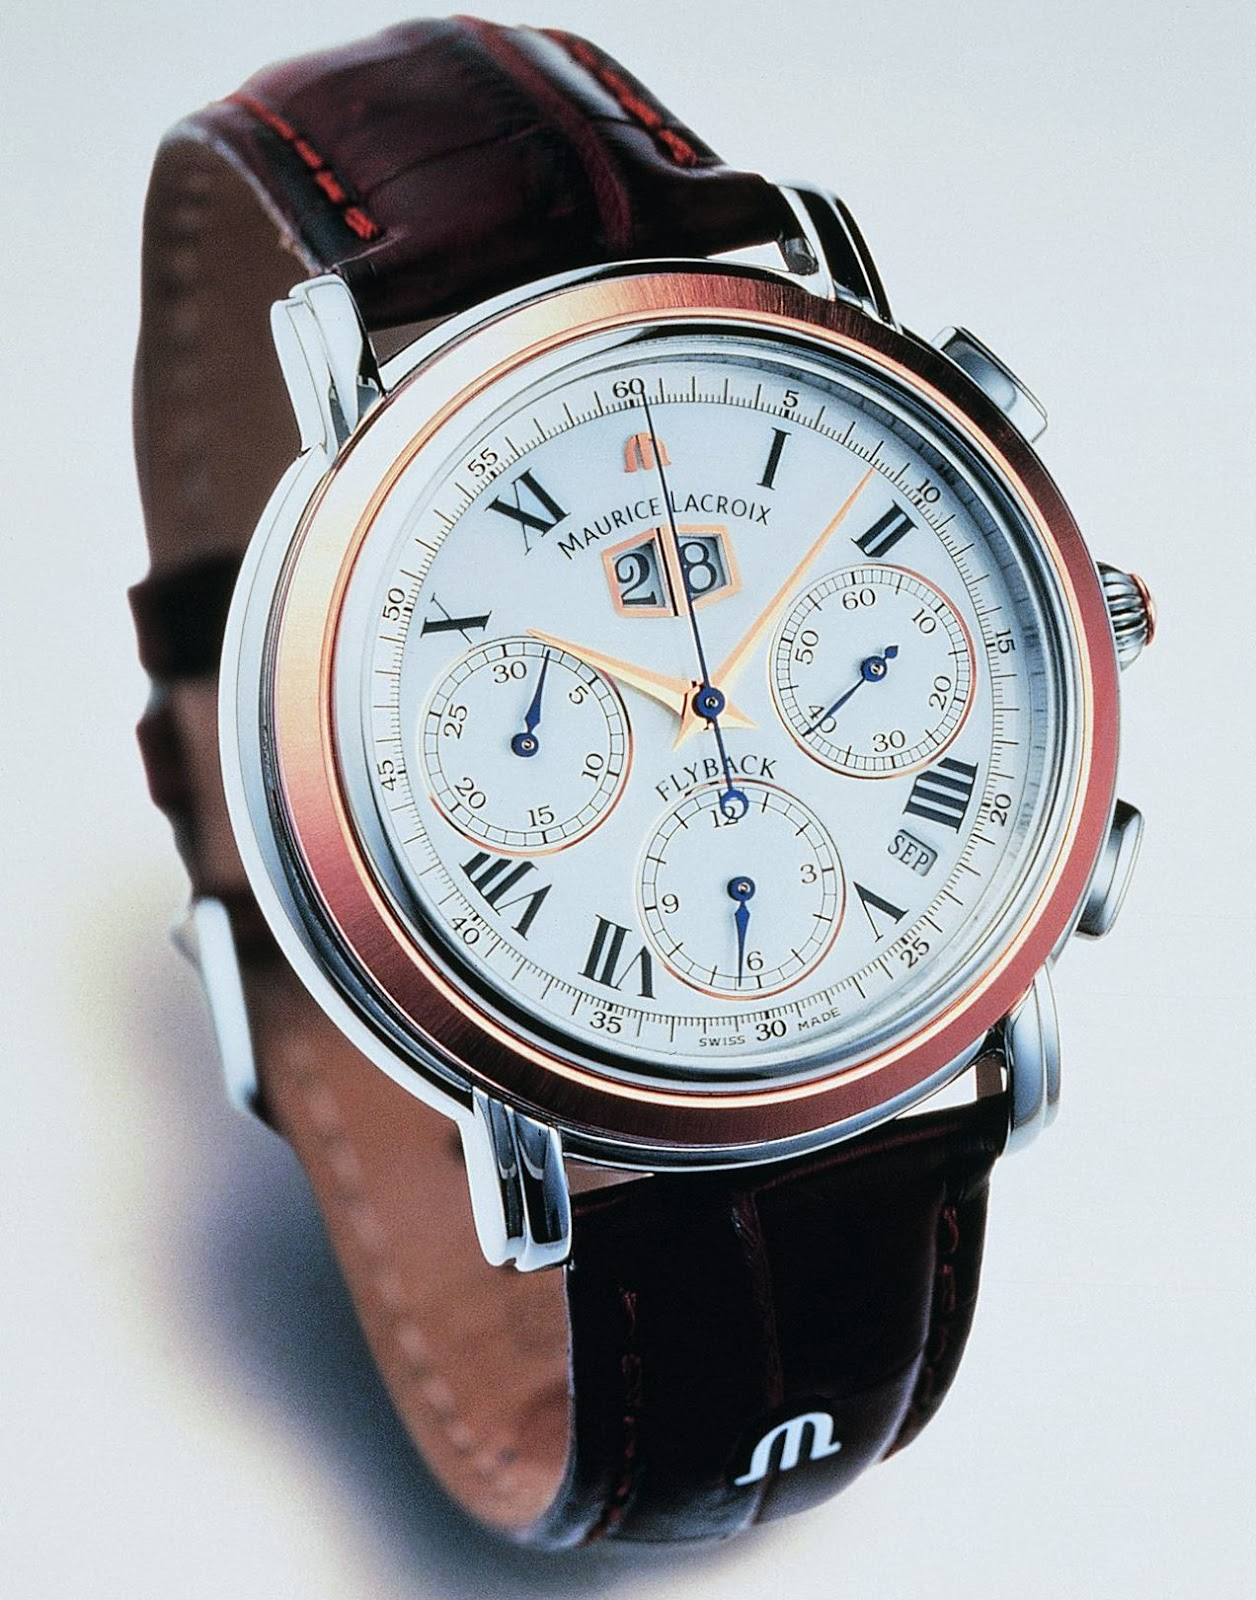 MAURICE LACROIX Masterpiece Flyback Annuaire - Split-Seconds Chronograph with Annual Calendar